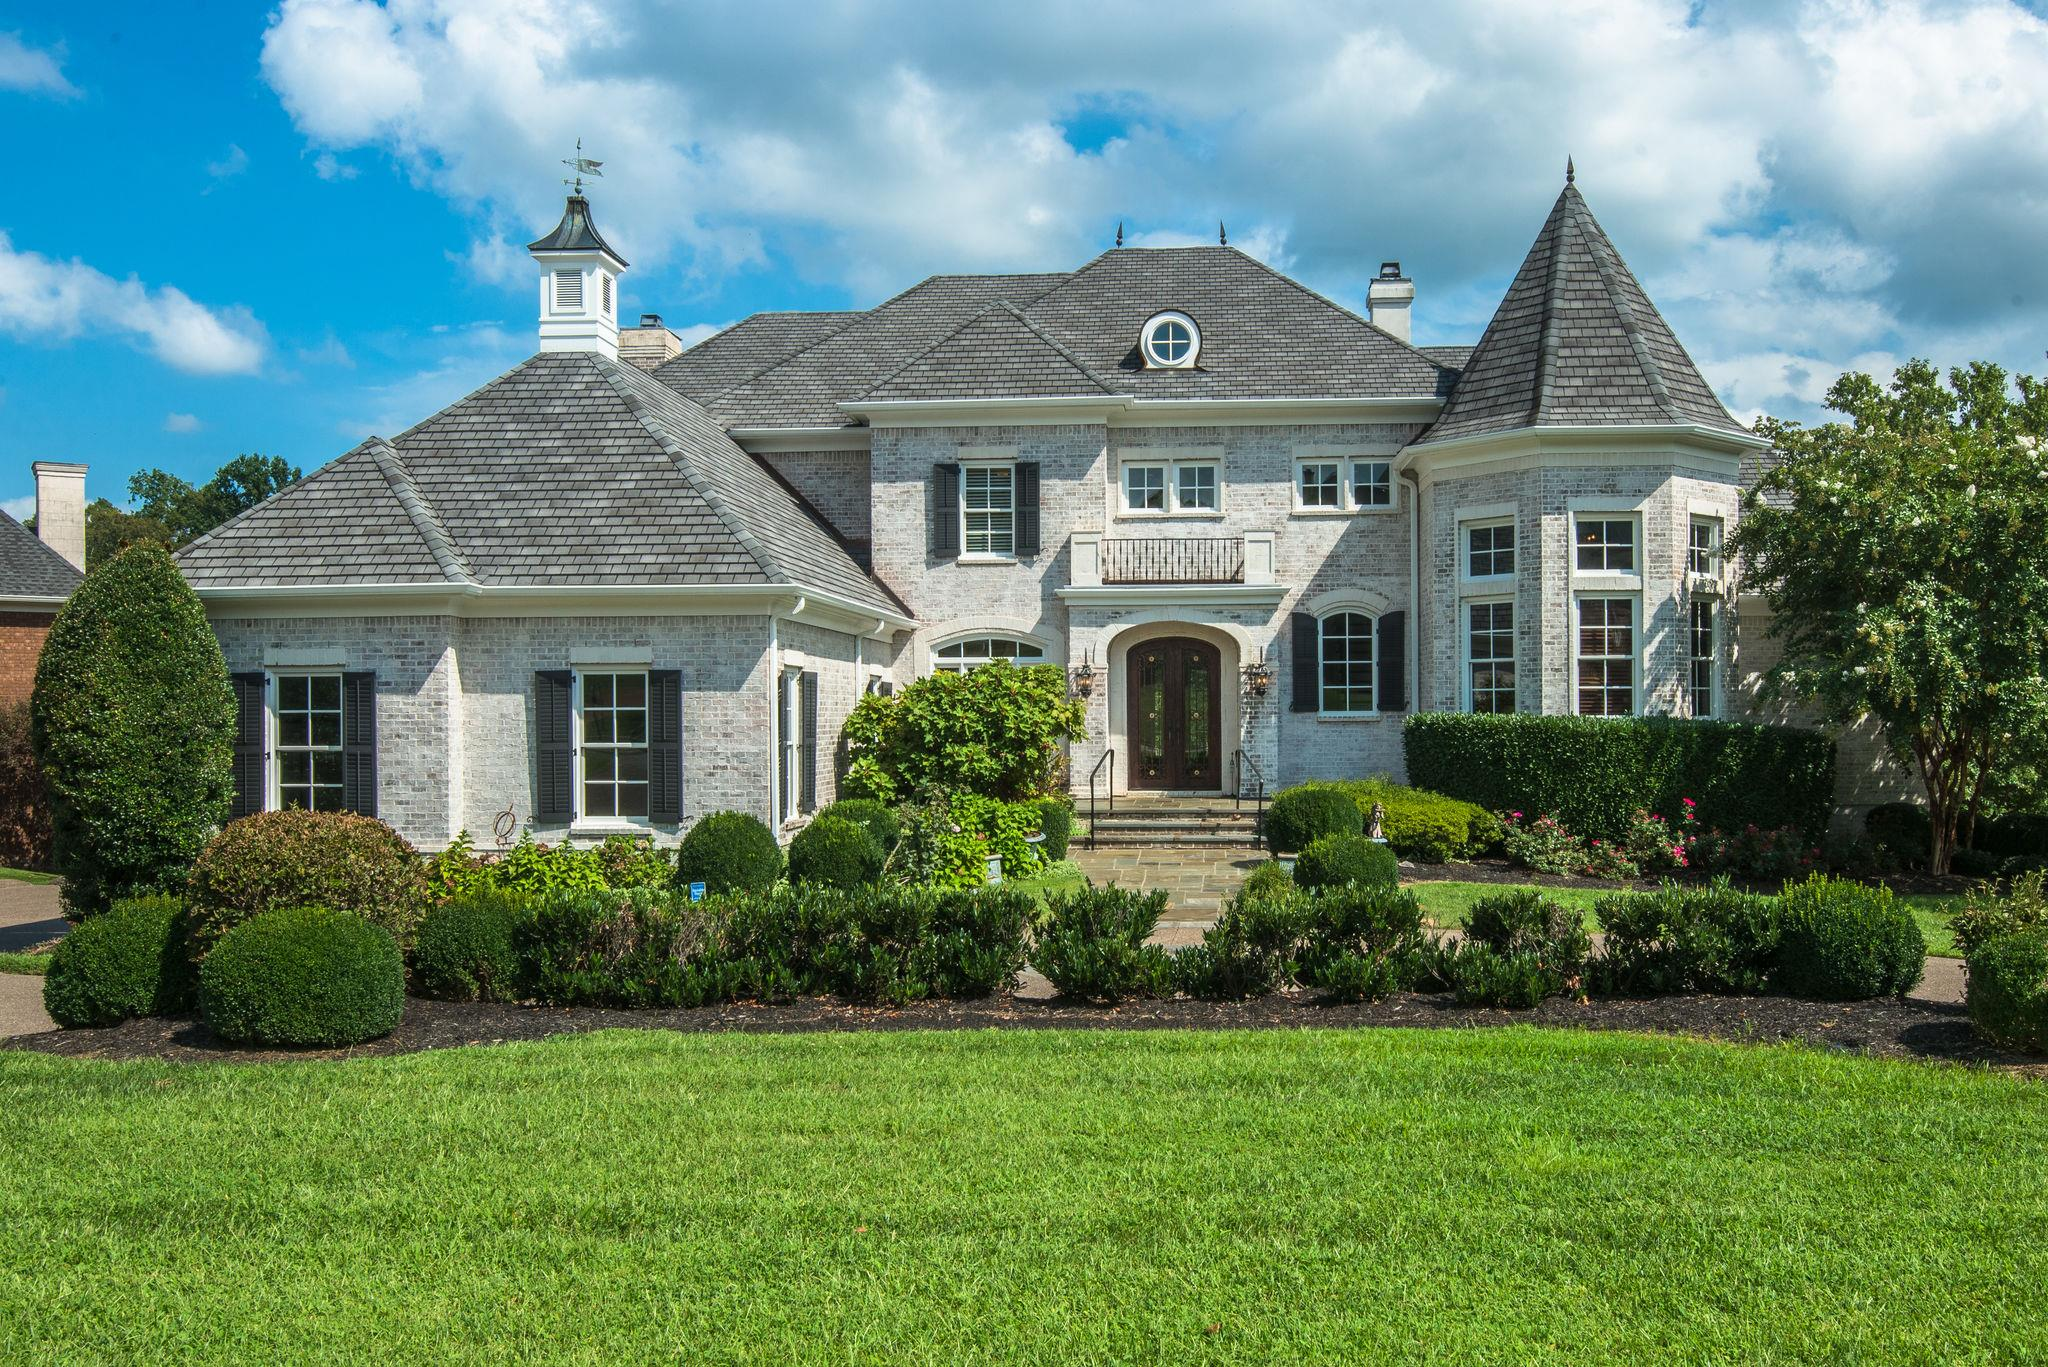 Wonderful French Country Manor style home in the Prestigious Governors Club. 6 bedrooms, each with its own full bath, plus 2 half baths (6,2 total). Two master suites, each on a walk-in floor. Two garages, one 3-car & one 2-car. Theatre room, 3-floor elevator, wine cellar/safe room, amazing pool with hot tub and waterfall, mahogany office, eat-in kitchen, formal dining room, summer kitchen, multiple family rooms, new paint, new flooring, and so much more!